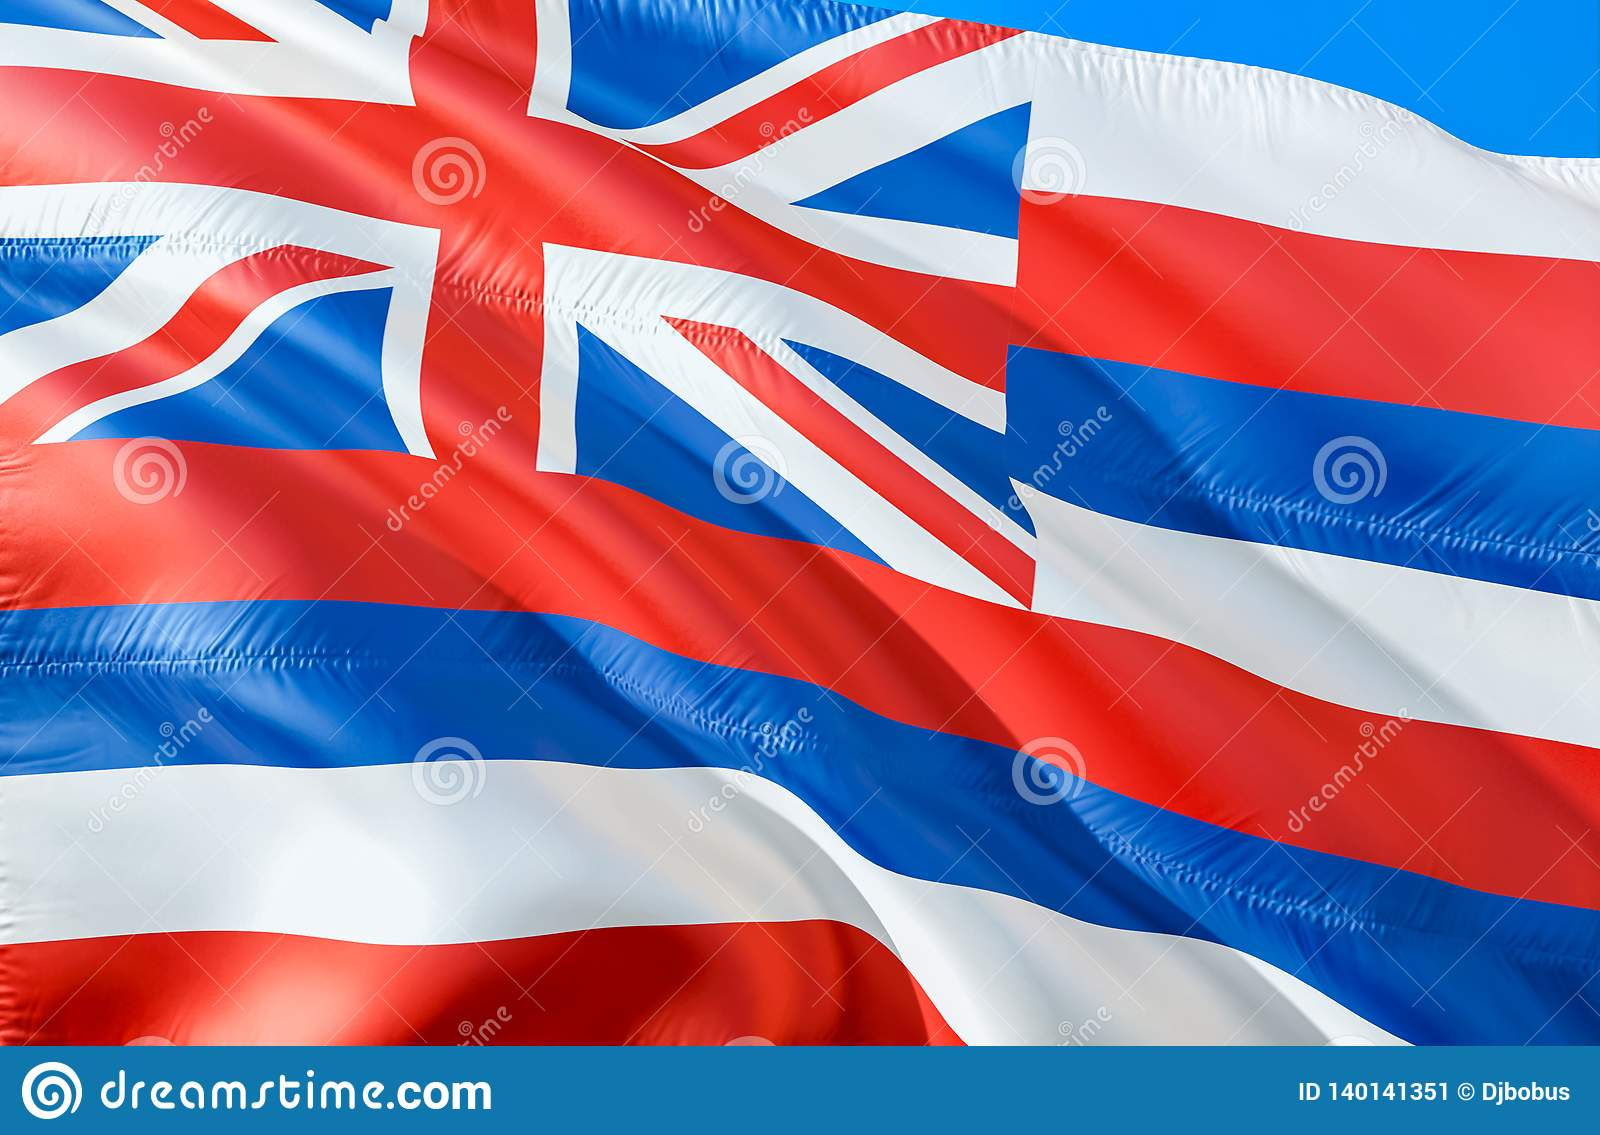 Hawaii flag. 3D Waving USA state flag design. The national US symbol of Hawaii state, 3D rendering. National colors and National